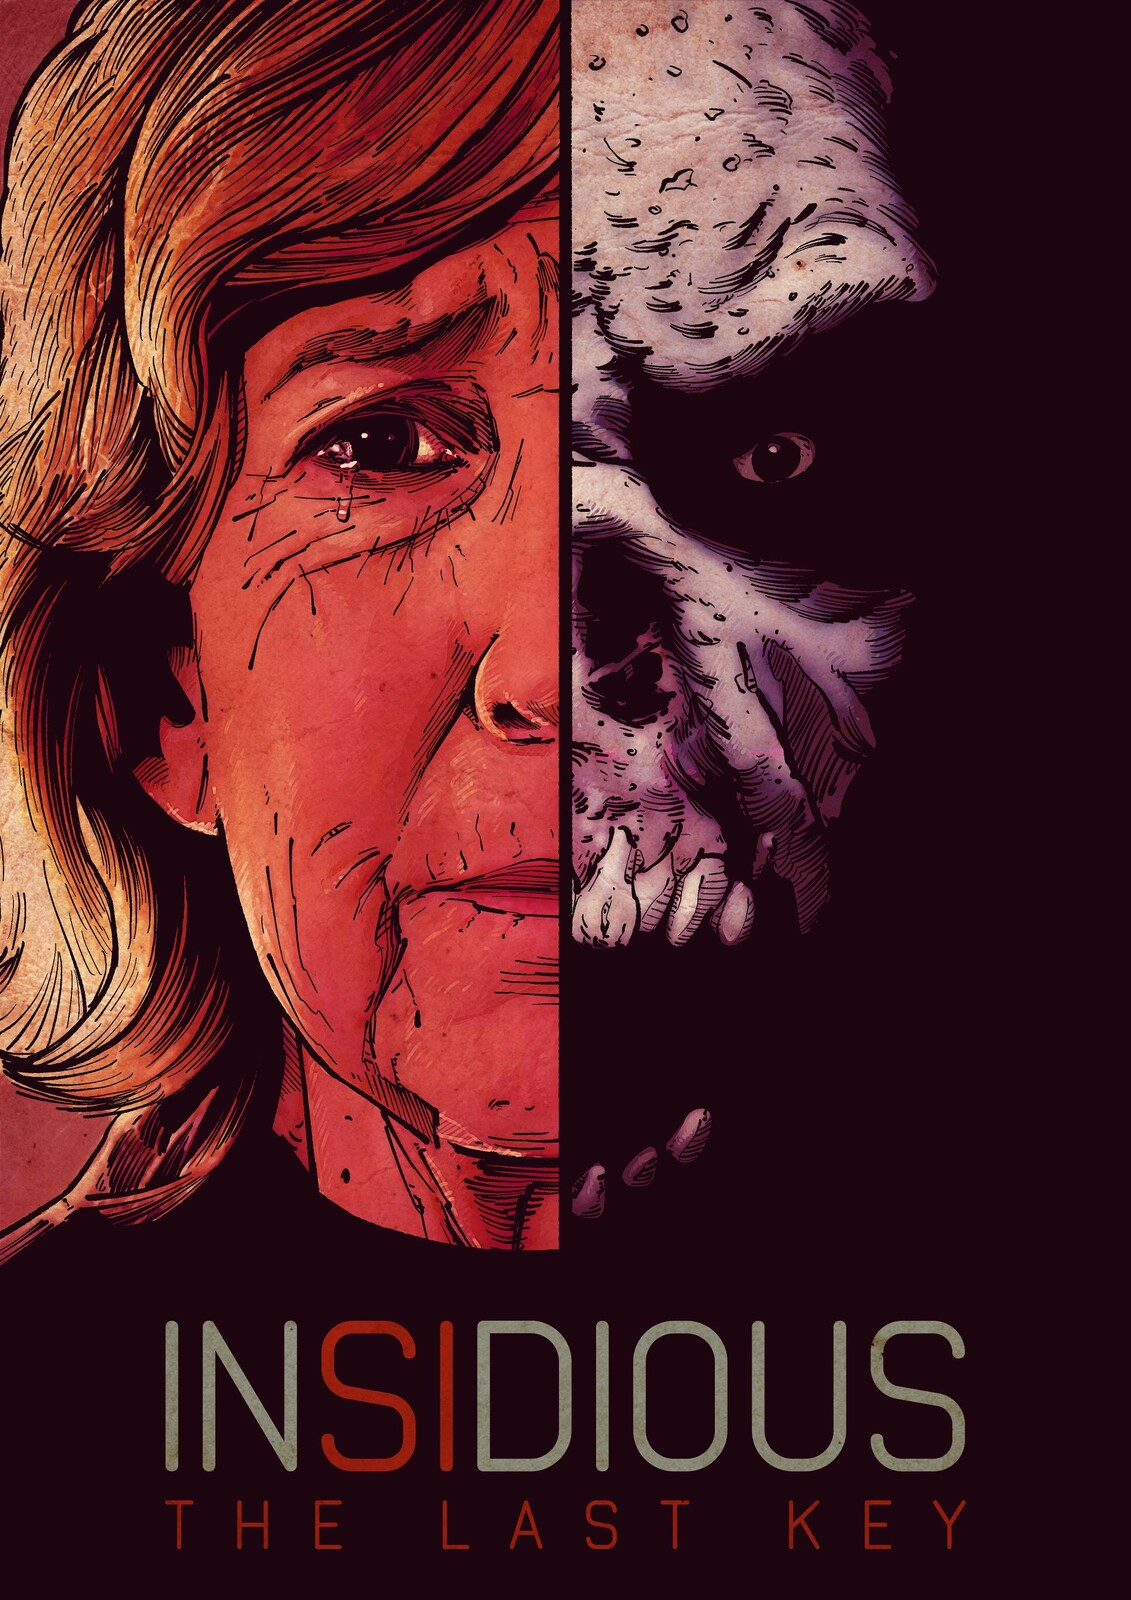 Insidious: The Last Key Alternative Poster